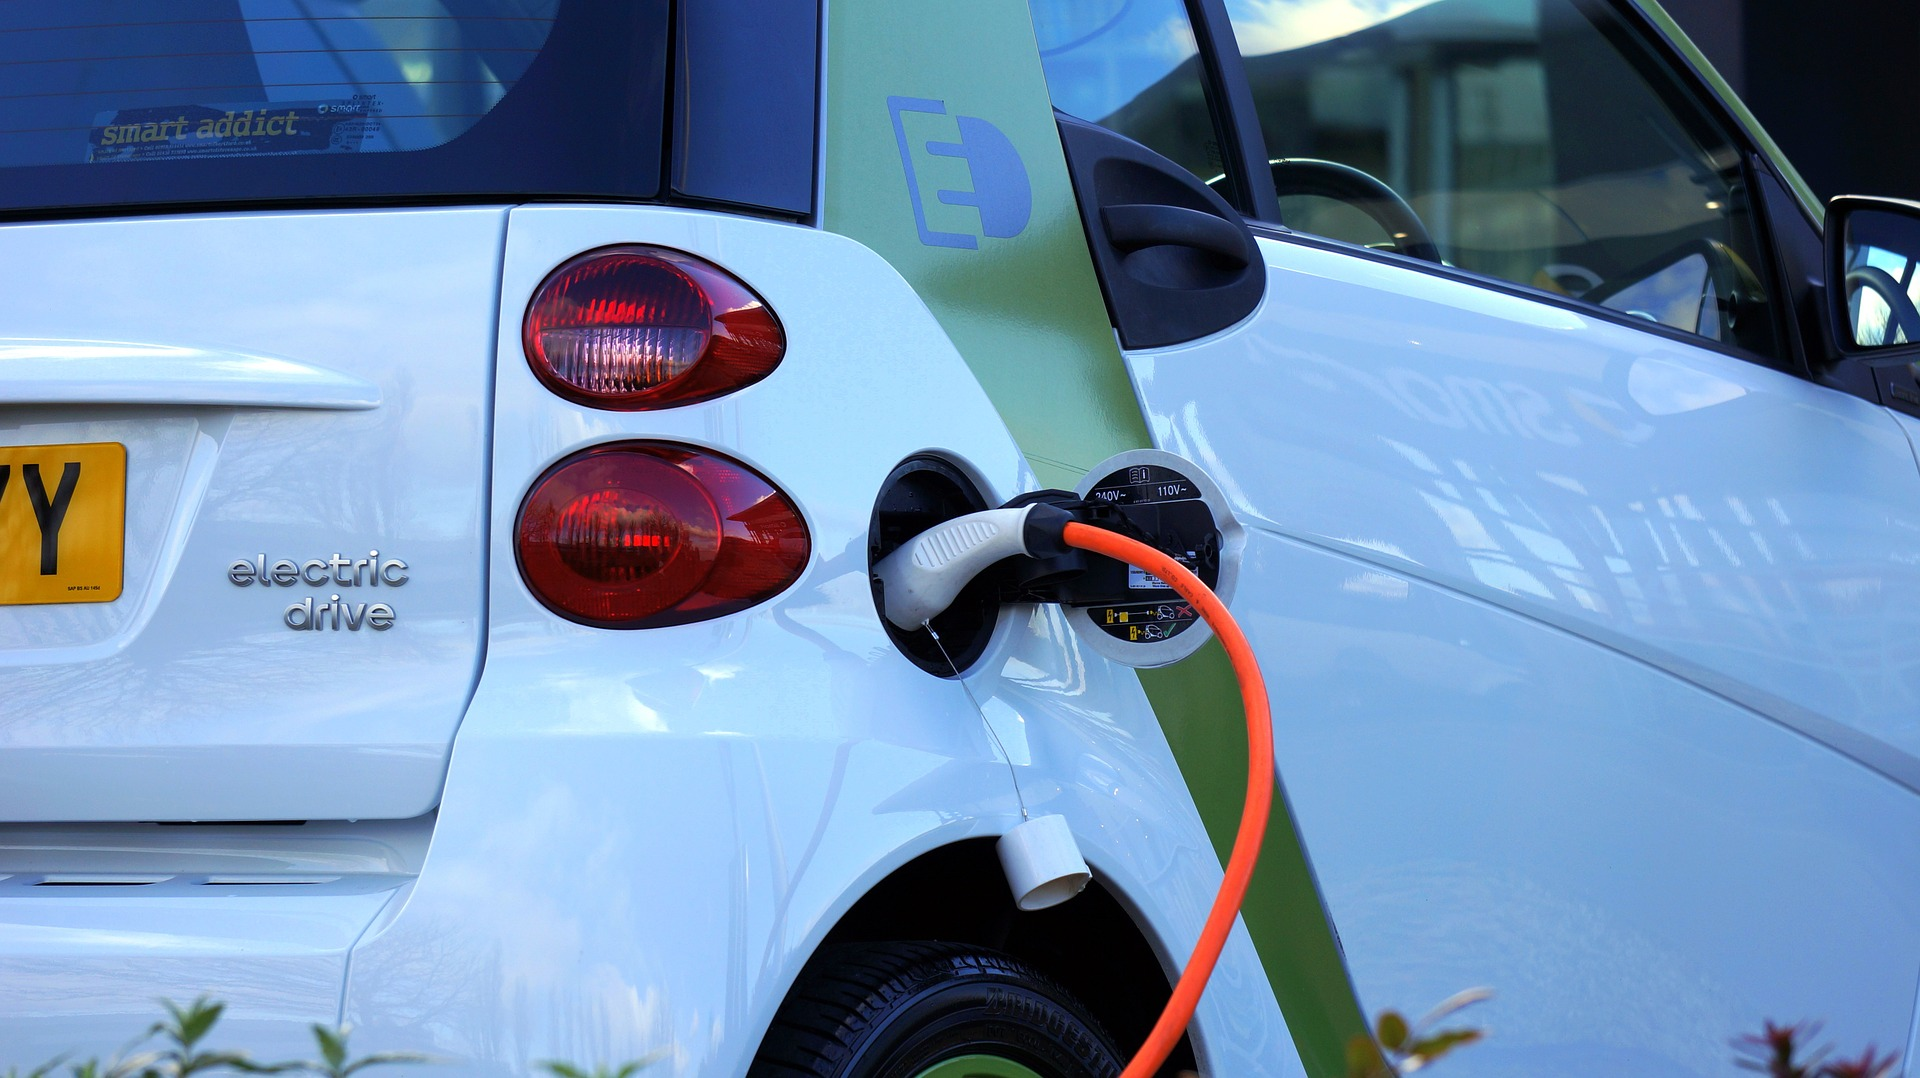 Two of Scotland's biggest firms join forces to try and get motorists to go electric